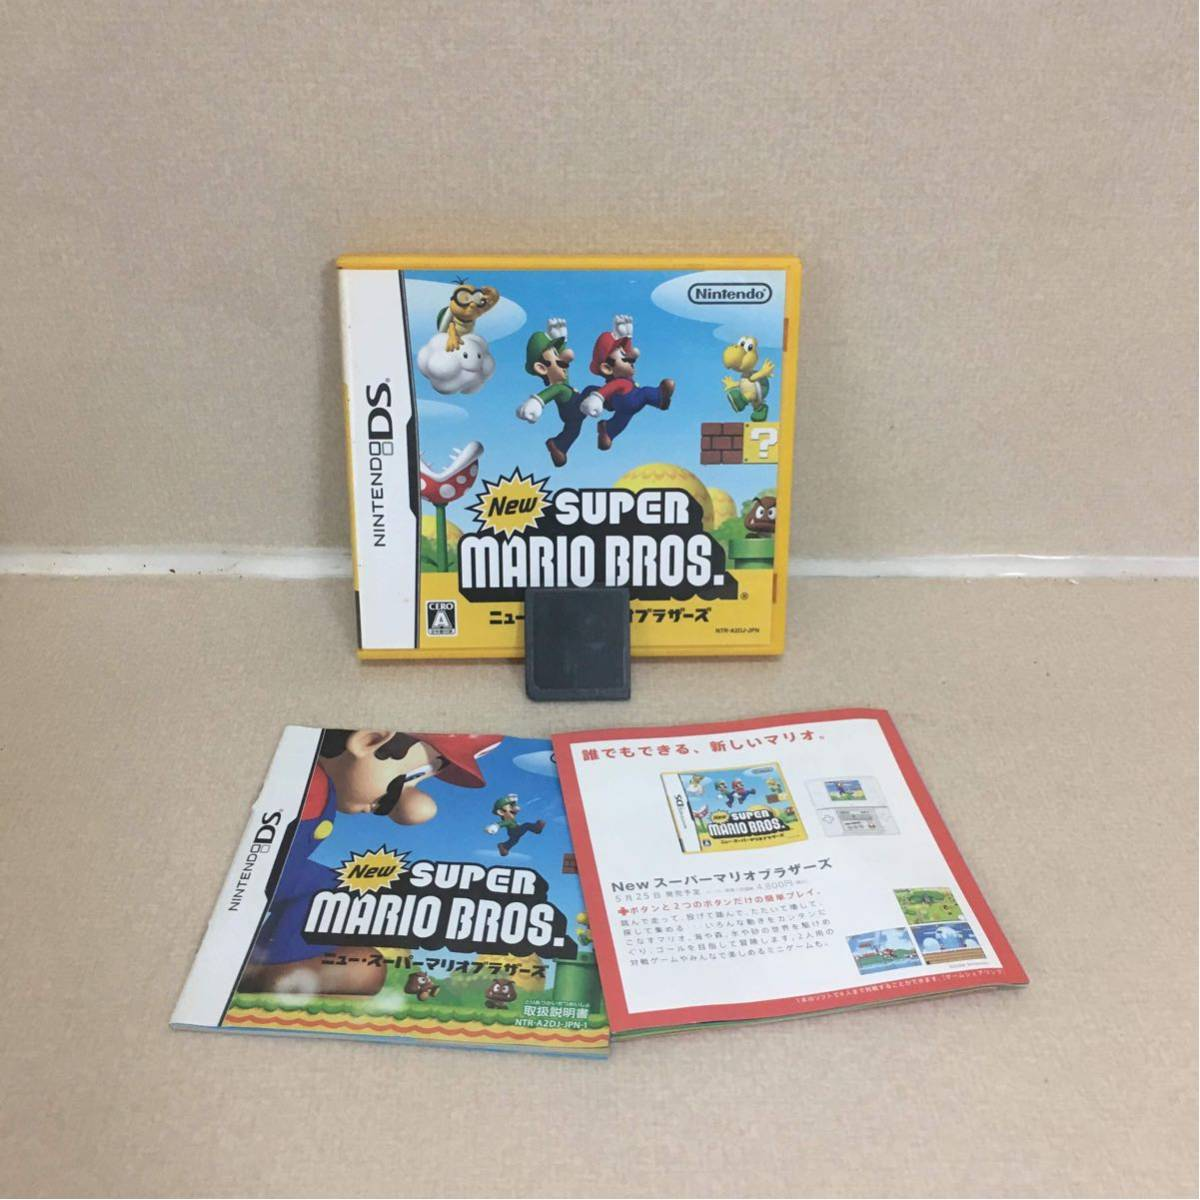 Nintendo DS New Super Mario Brothers game soft : Real Yahoo